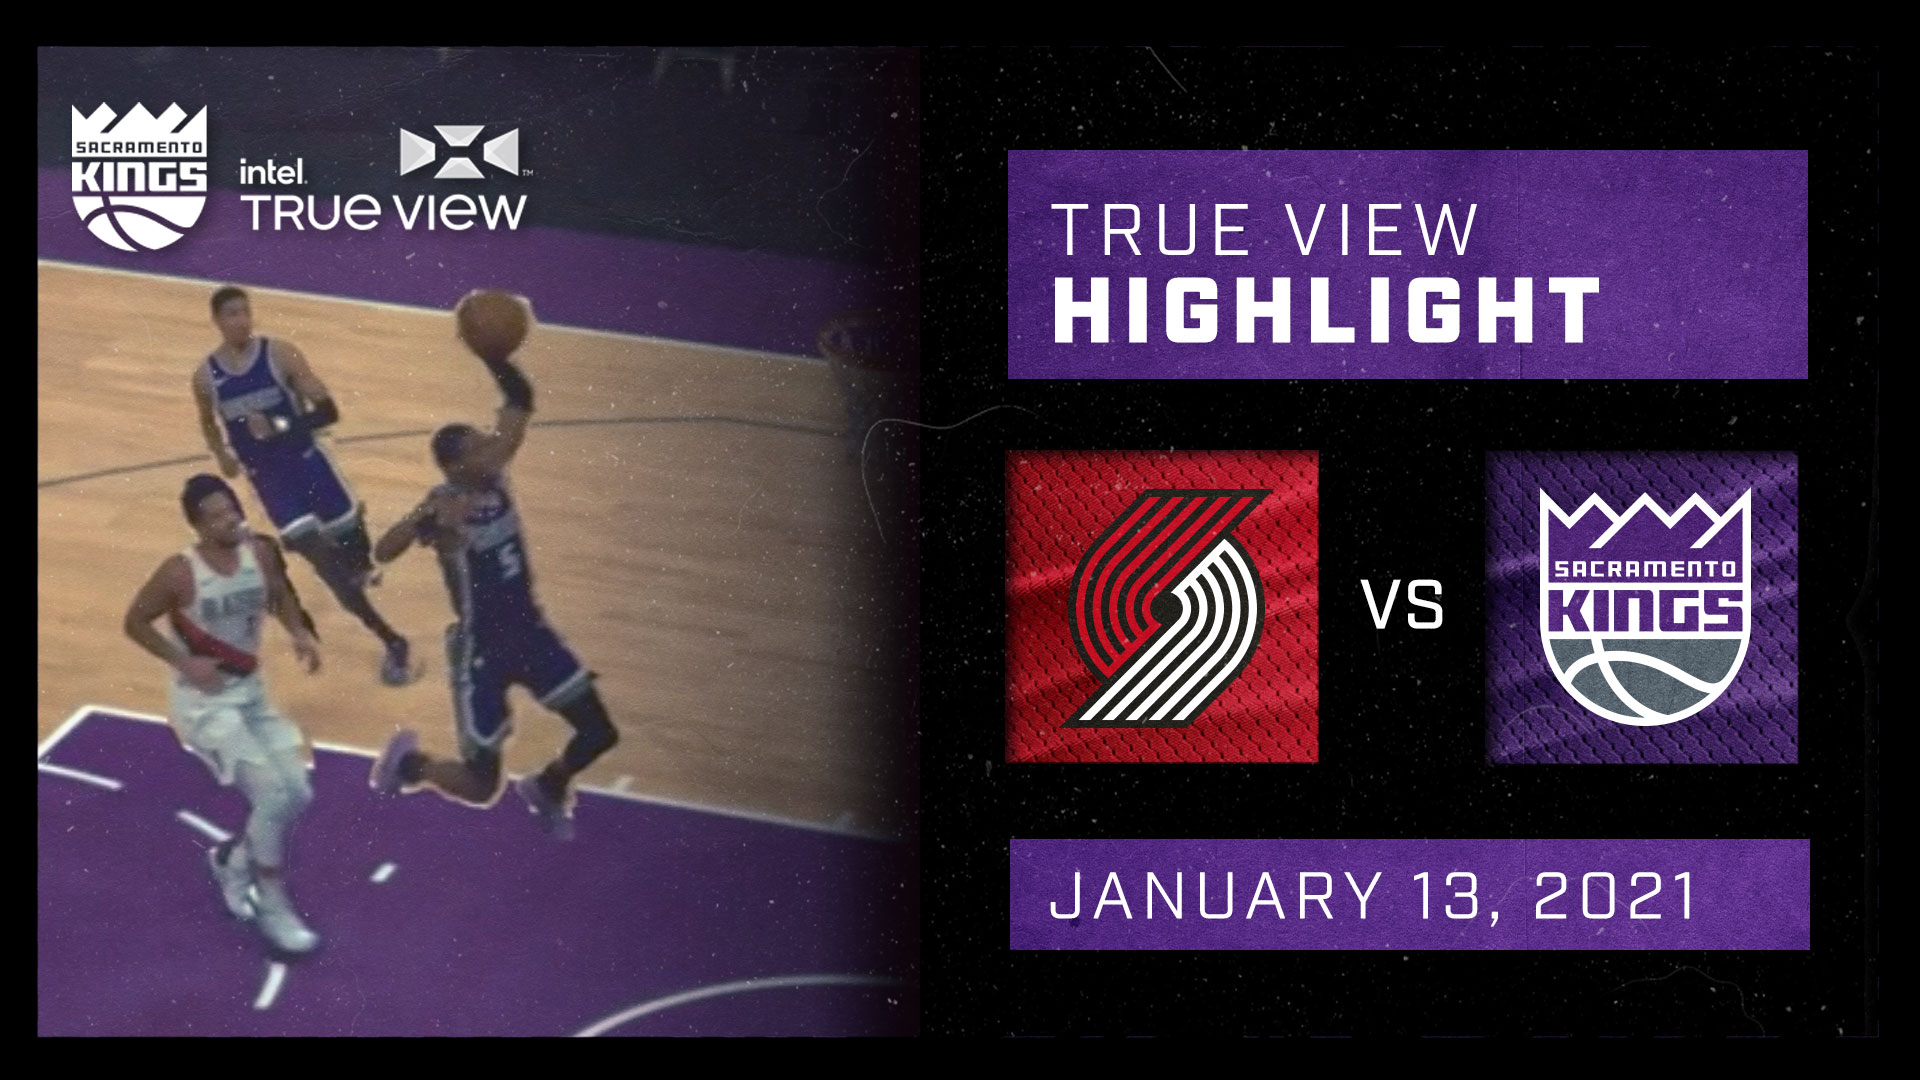 Intel TrueView Highlight: Ty Haliburton Steal and Assist vs Portland 1.13.21